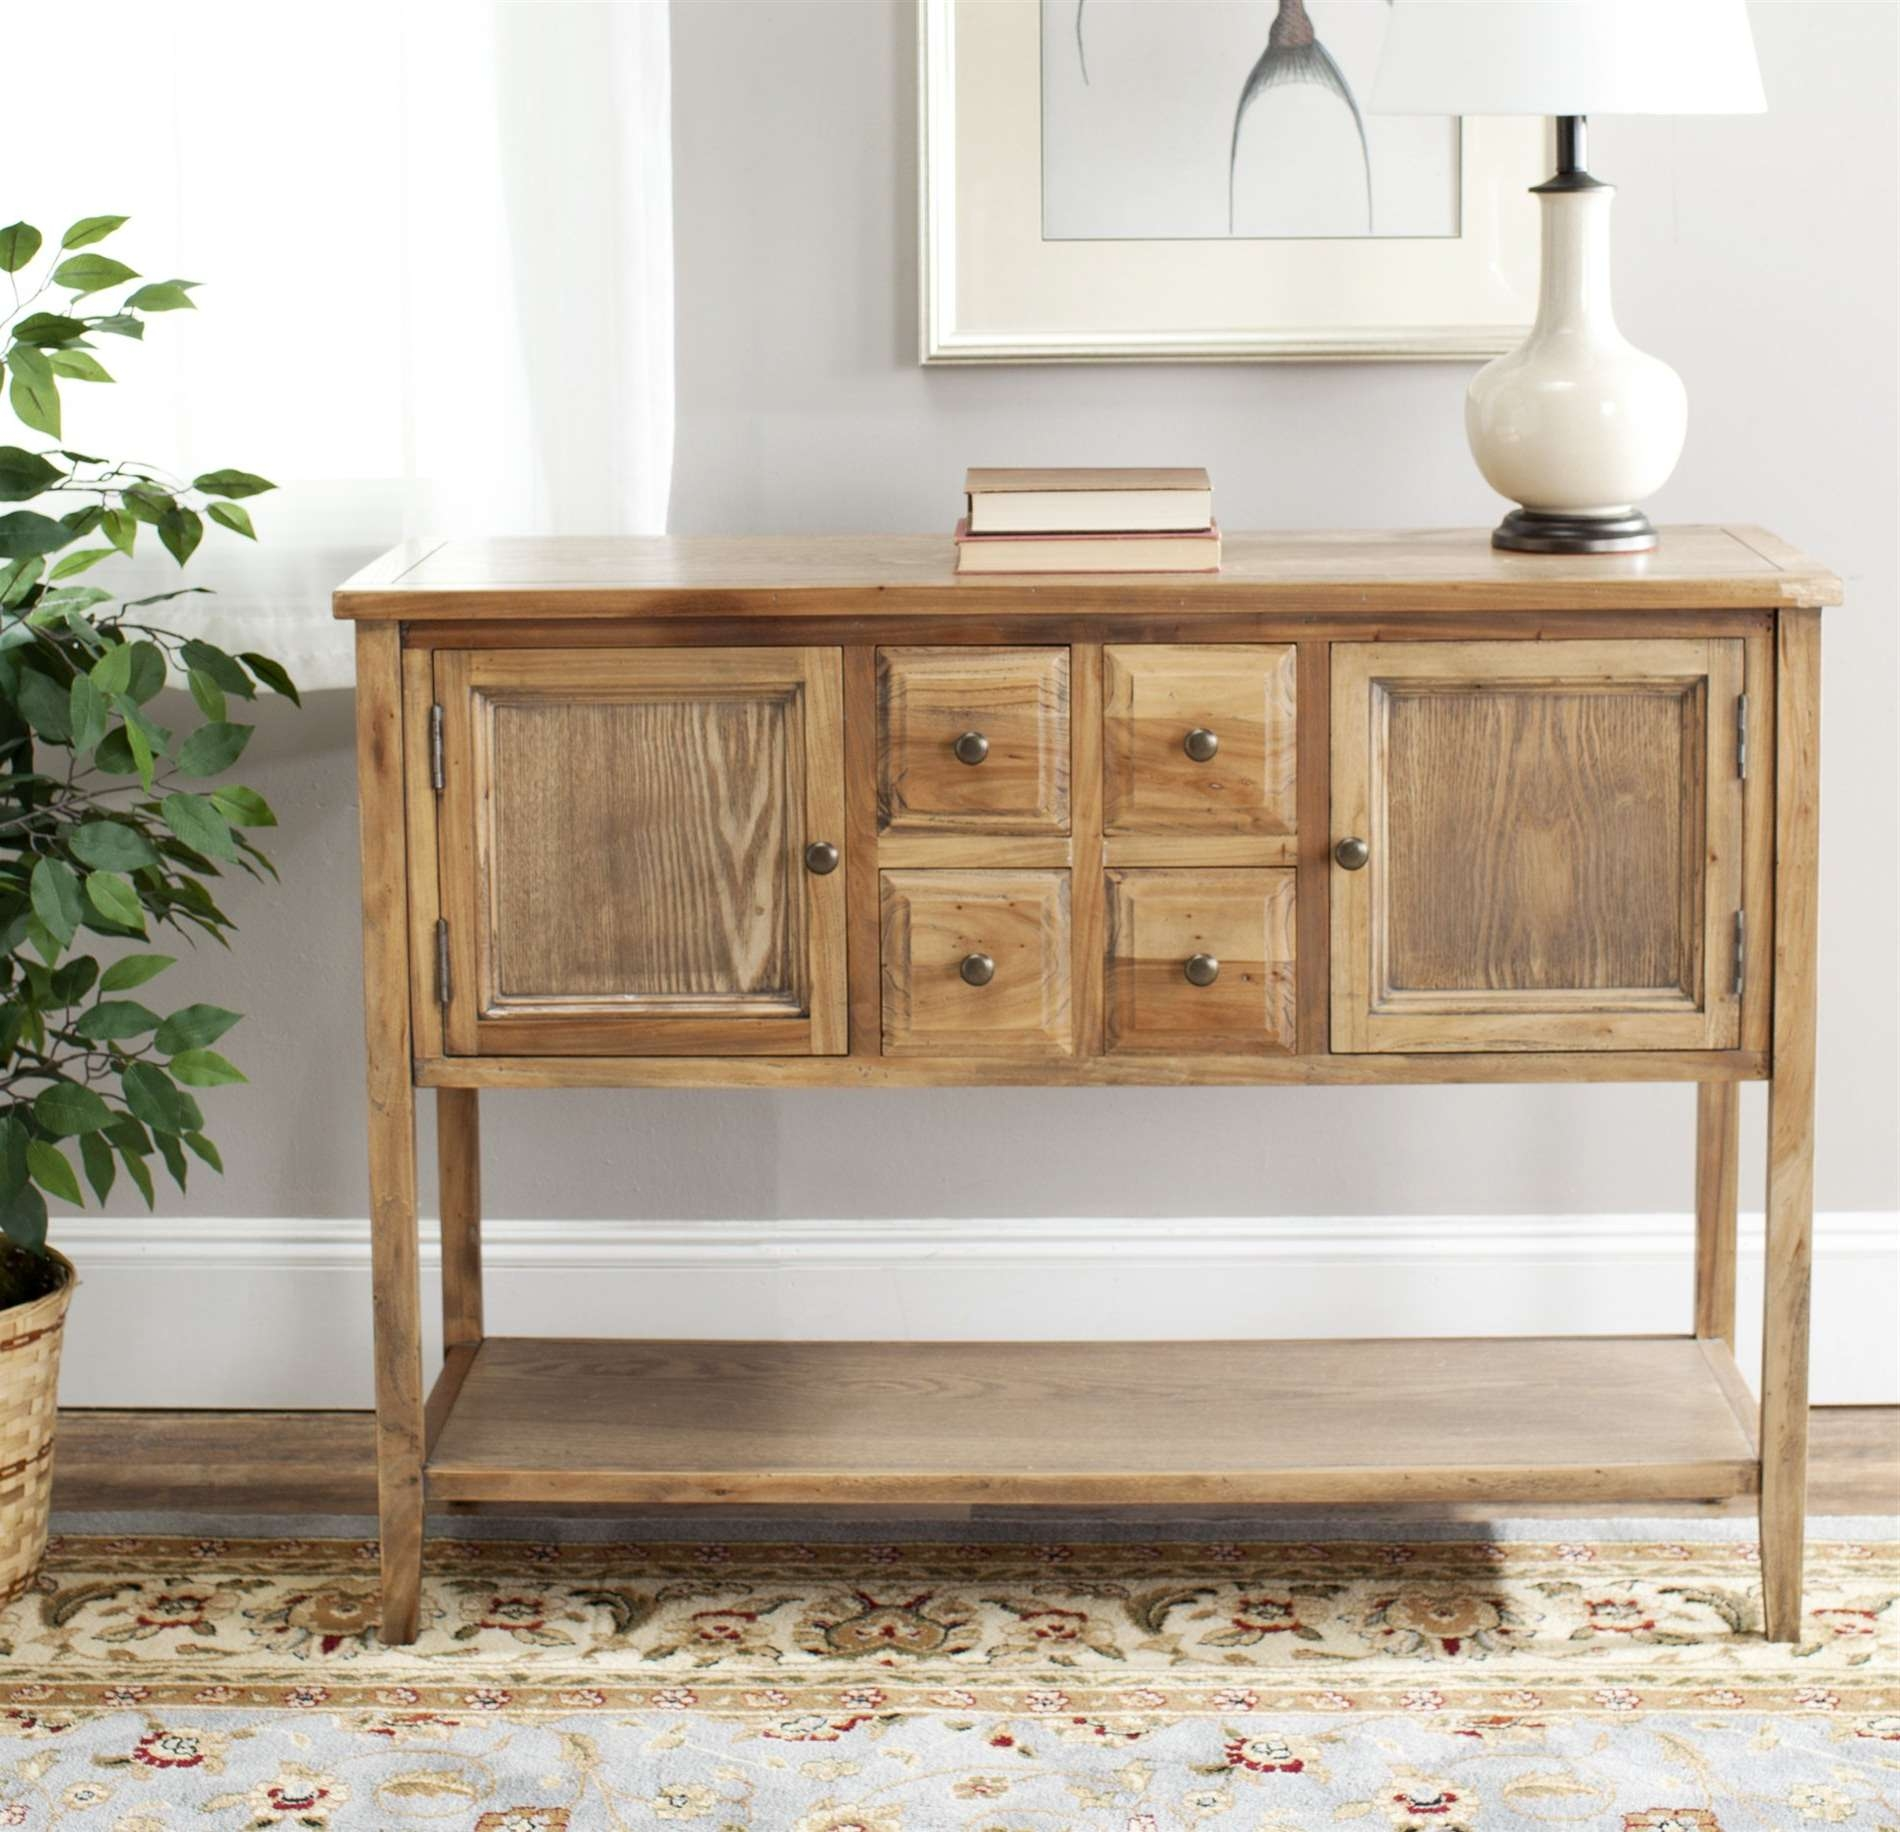 Safavieh Amh6517A Charlotte Sideboard Sfv Amh6517A Regarding Safavieh Sideboards (View 8 of 20)